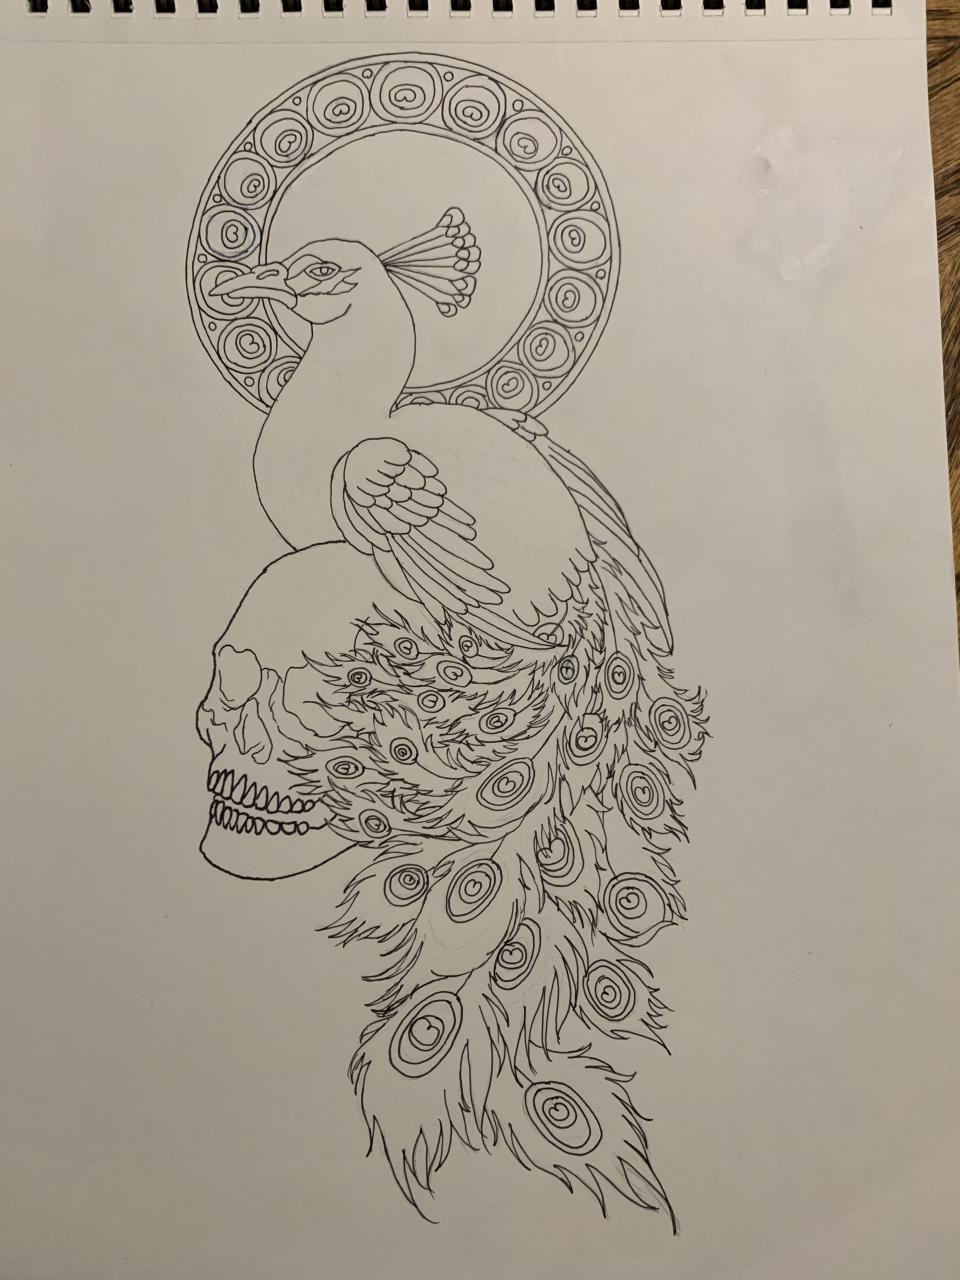 Art Nouveau peacock and skull. I'm really excited to get this done. Hopefully I'll get a chance to color it this weekend. I've wanted this done for a while.